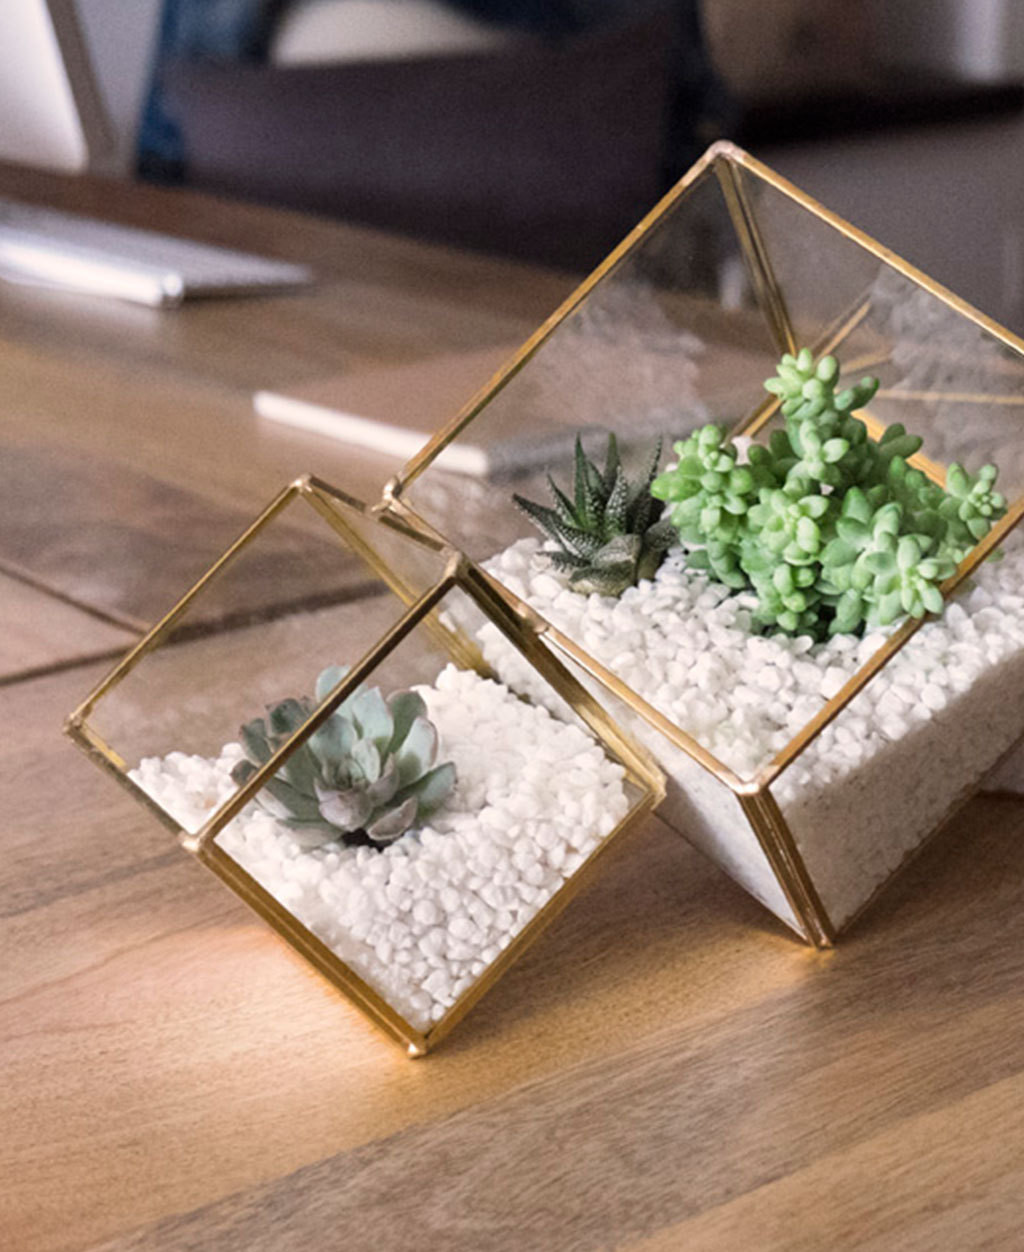 West Elm's gold faceted terrariums hold low maintenance succulents, perfect for an office space.